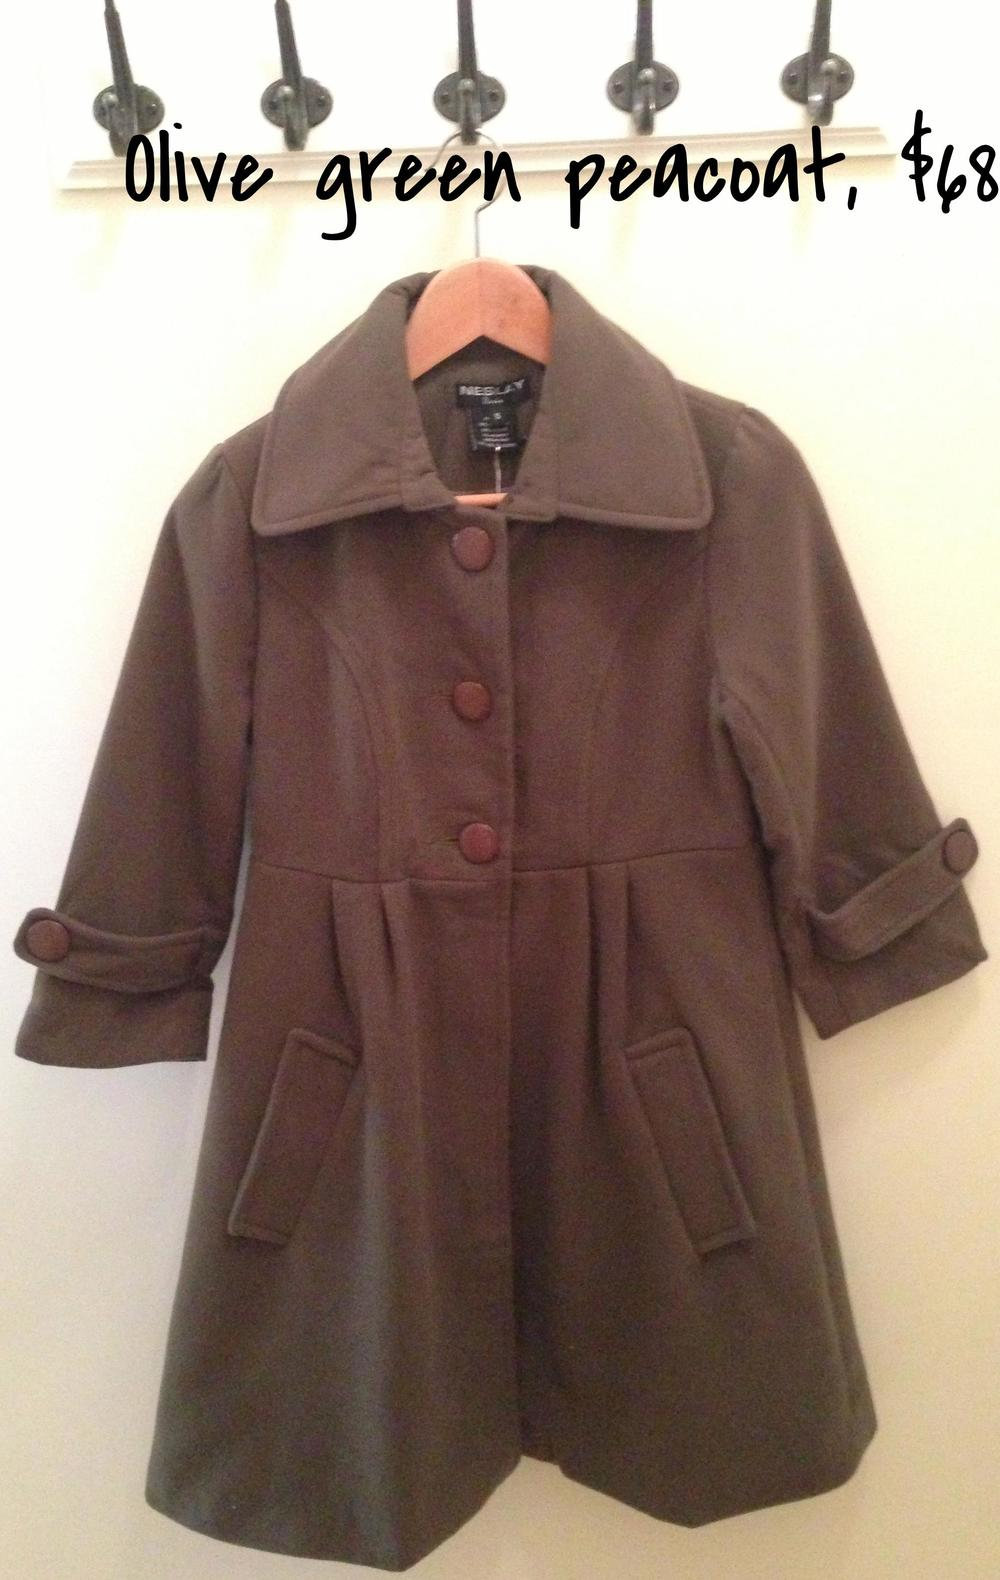 green pea coat front view.jpg